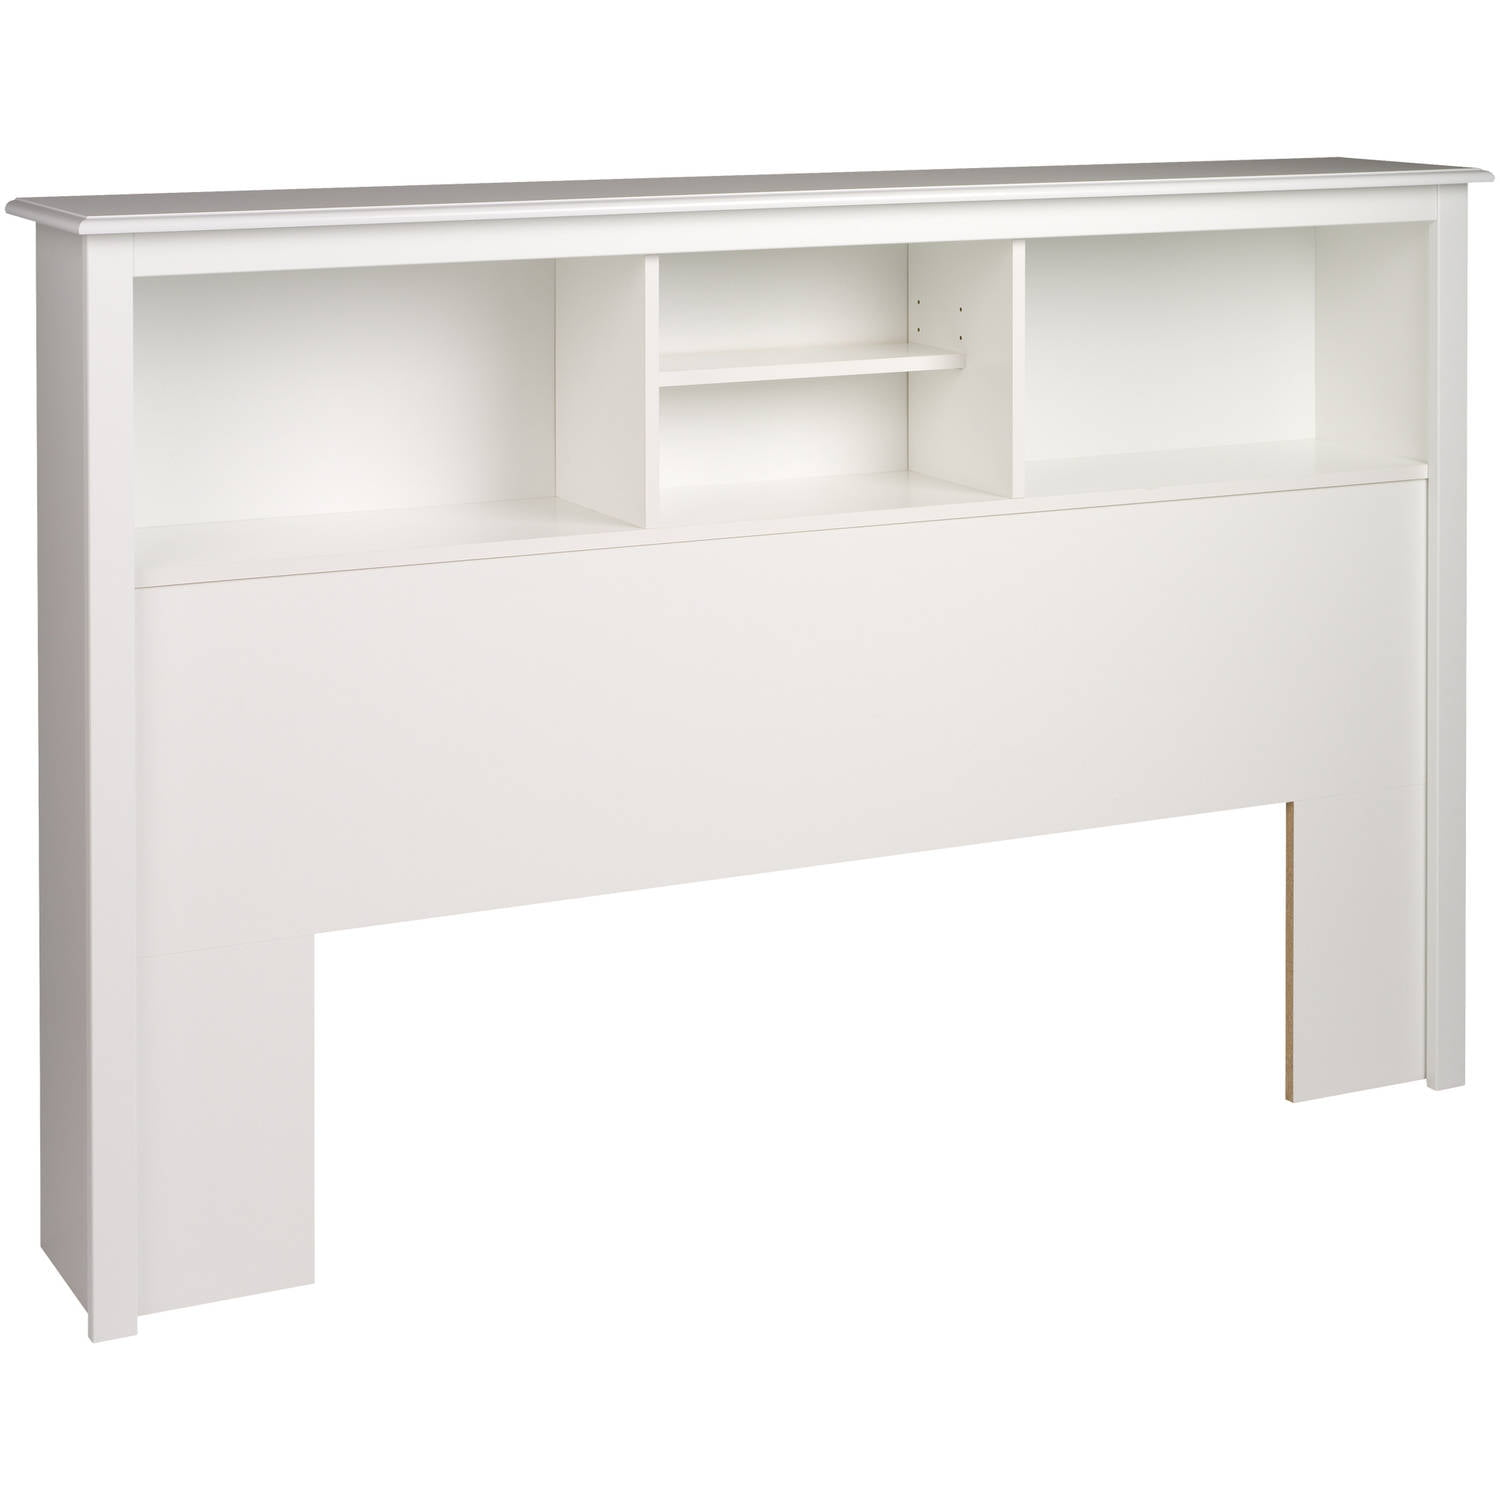 narrow tall small black slim shelf shelving corner unit bookshelf bookcase furniture white